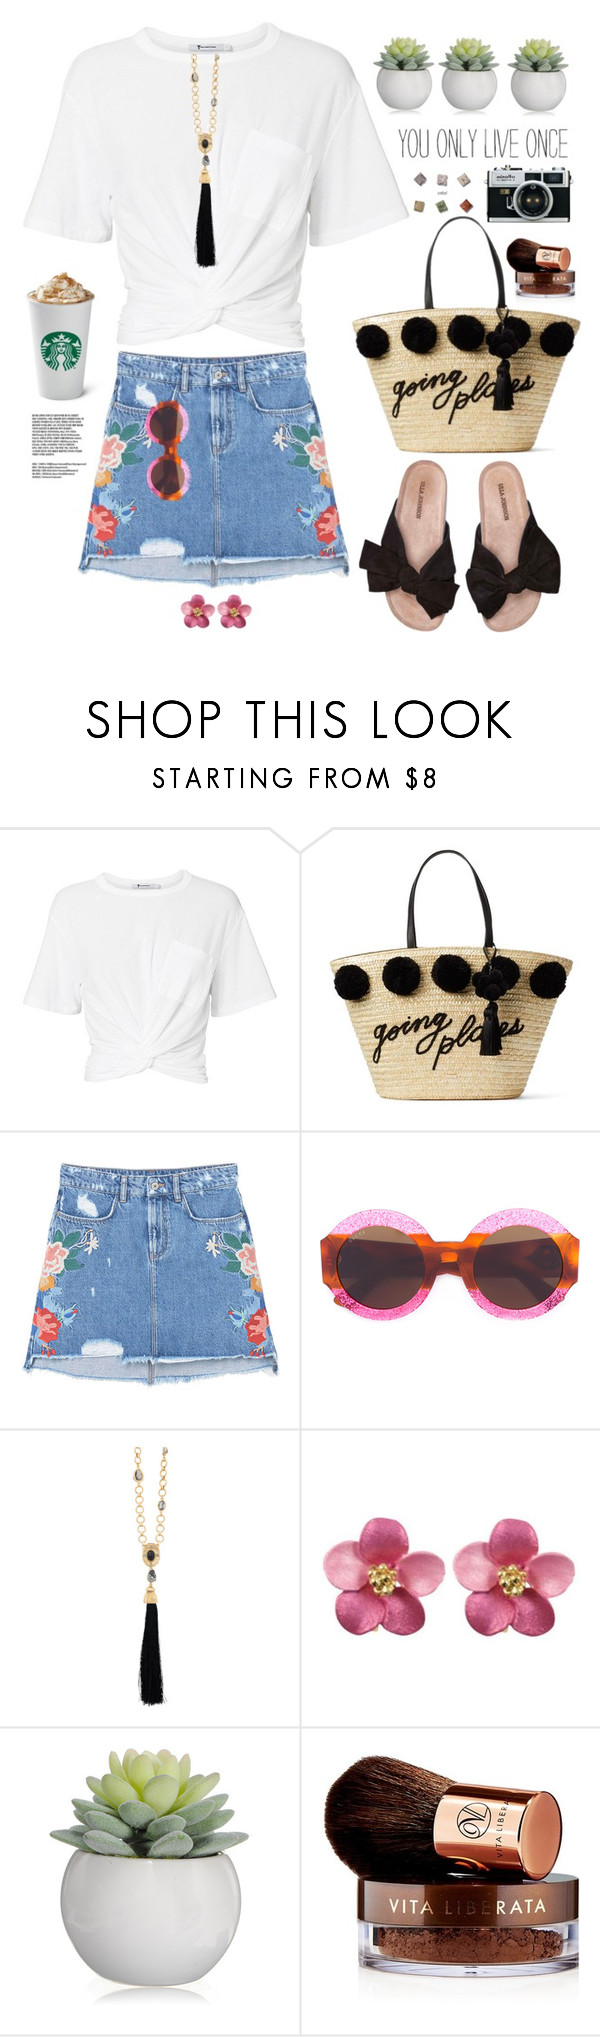 """""""You only live once"""" by hamaly ❤ liked on Polyvore featuring T By Alexander Wang, Kate Spade, MANGO, Gucci, Oscar de la Renta, Vita Liberata, outfit, ootd, trends and denimskirt"""